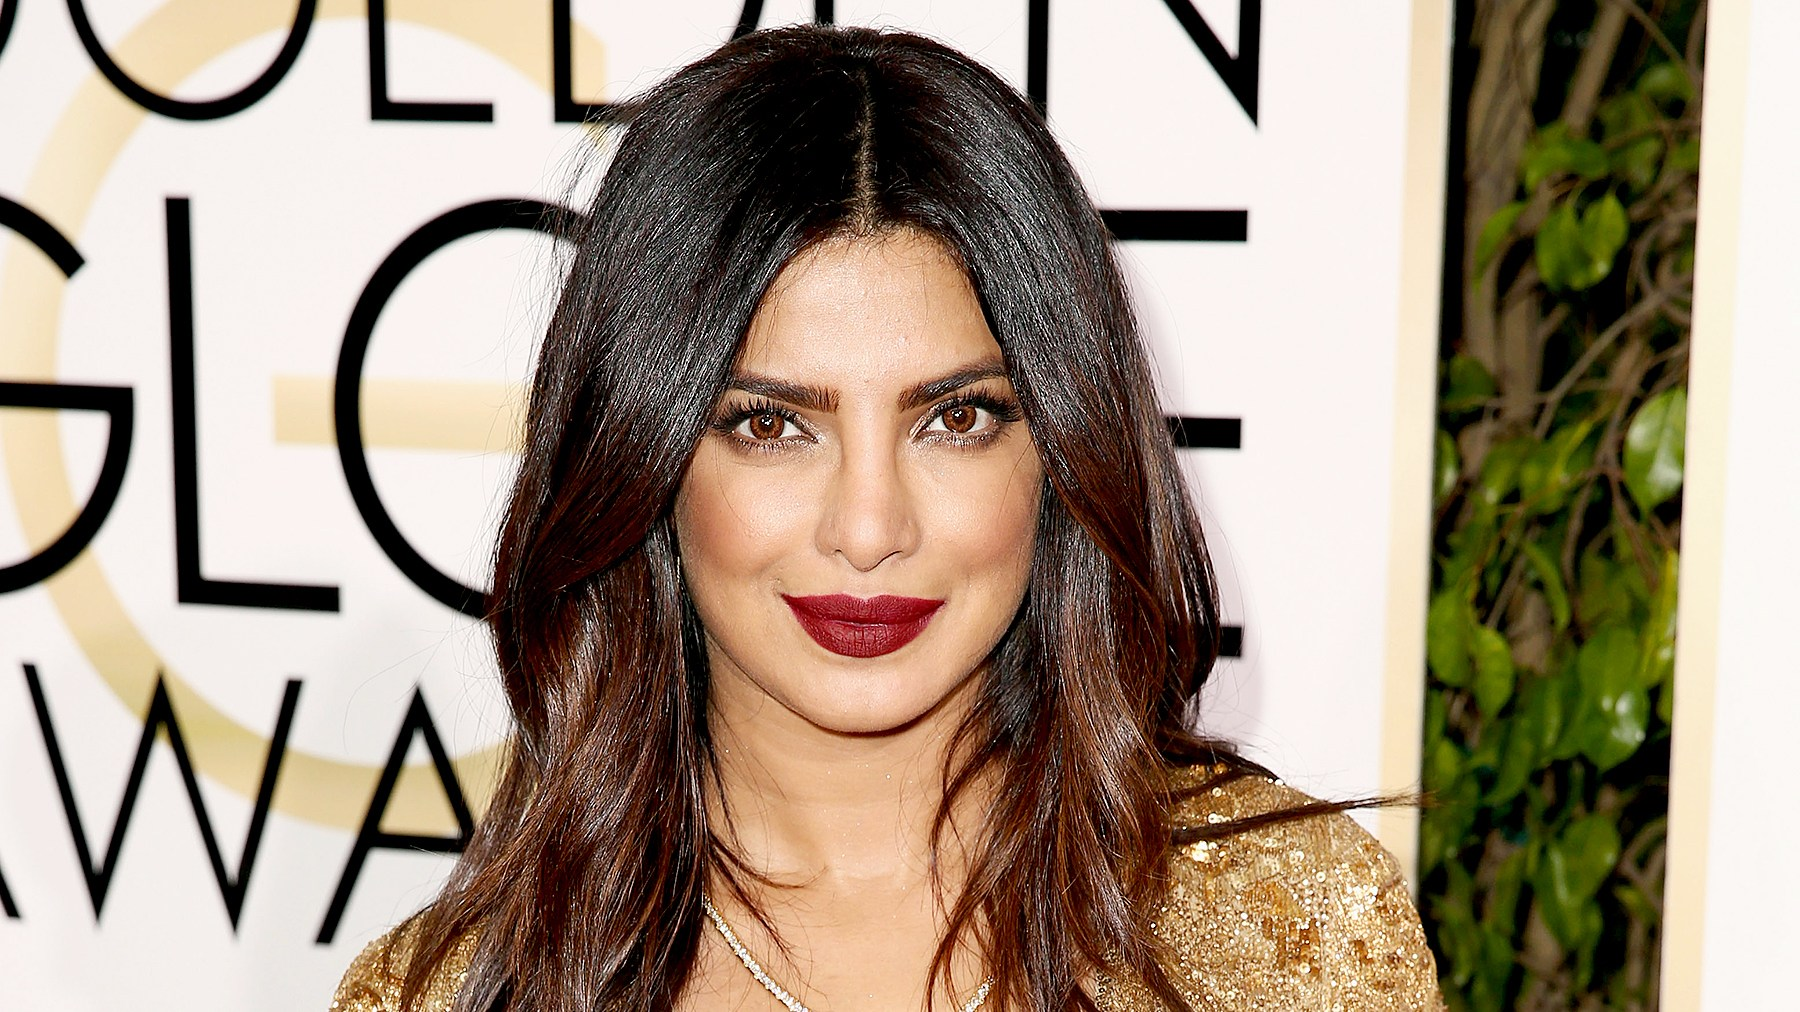 Priyanka Chopra attends the 74th Annual Golden Globe Awards at The Beverly Hilton Hotel on January 8, 2017 in Beverly Hills, California.